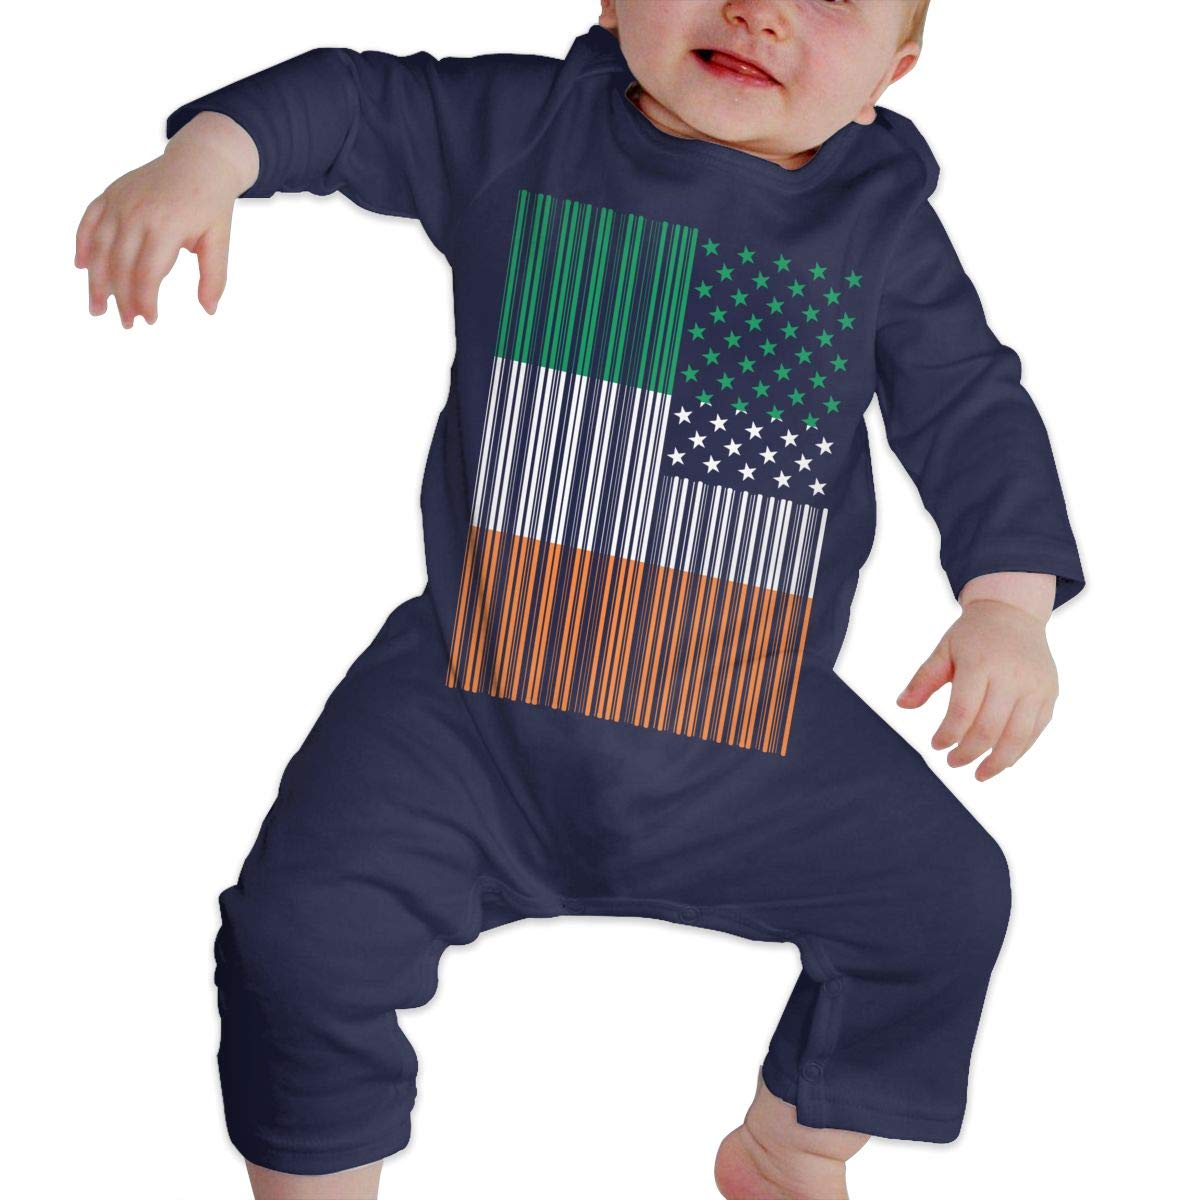 Bar Coded USA Irish Flag Infant Baby Girl Boys Sleep and Play Jumpsuits Playsuit Outfits